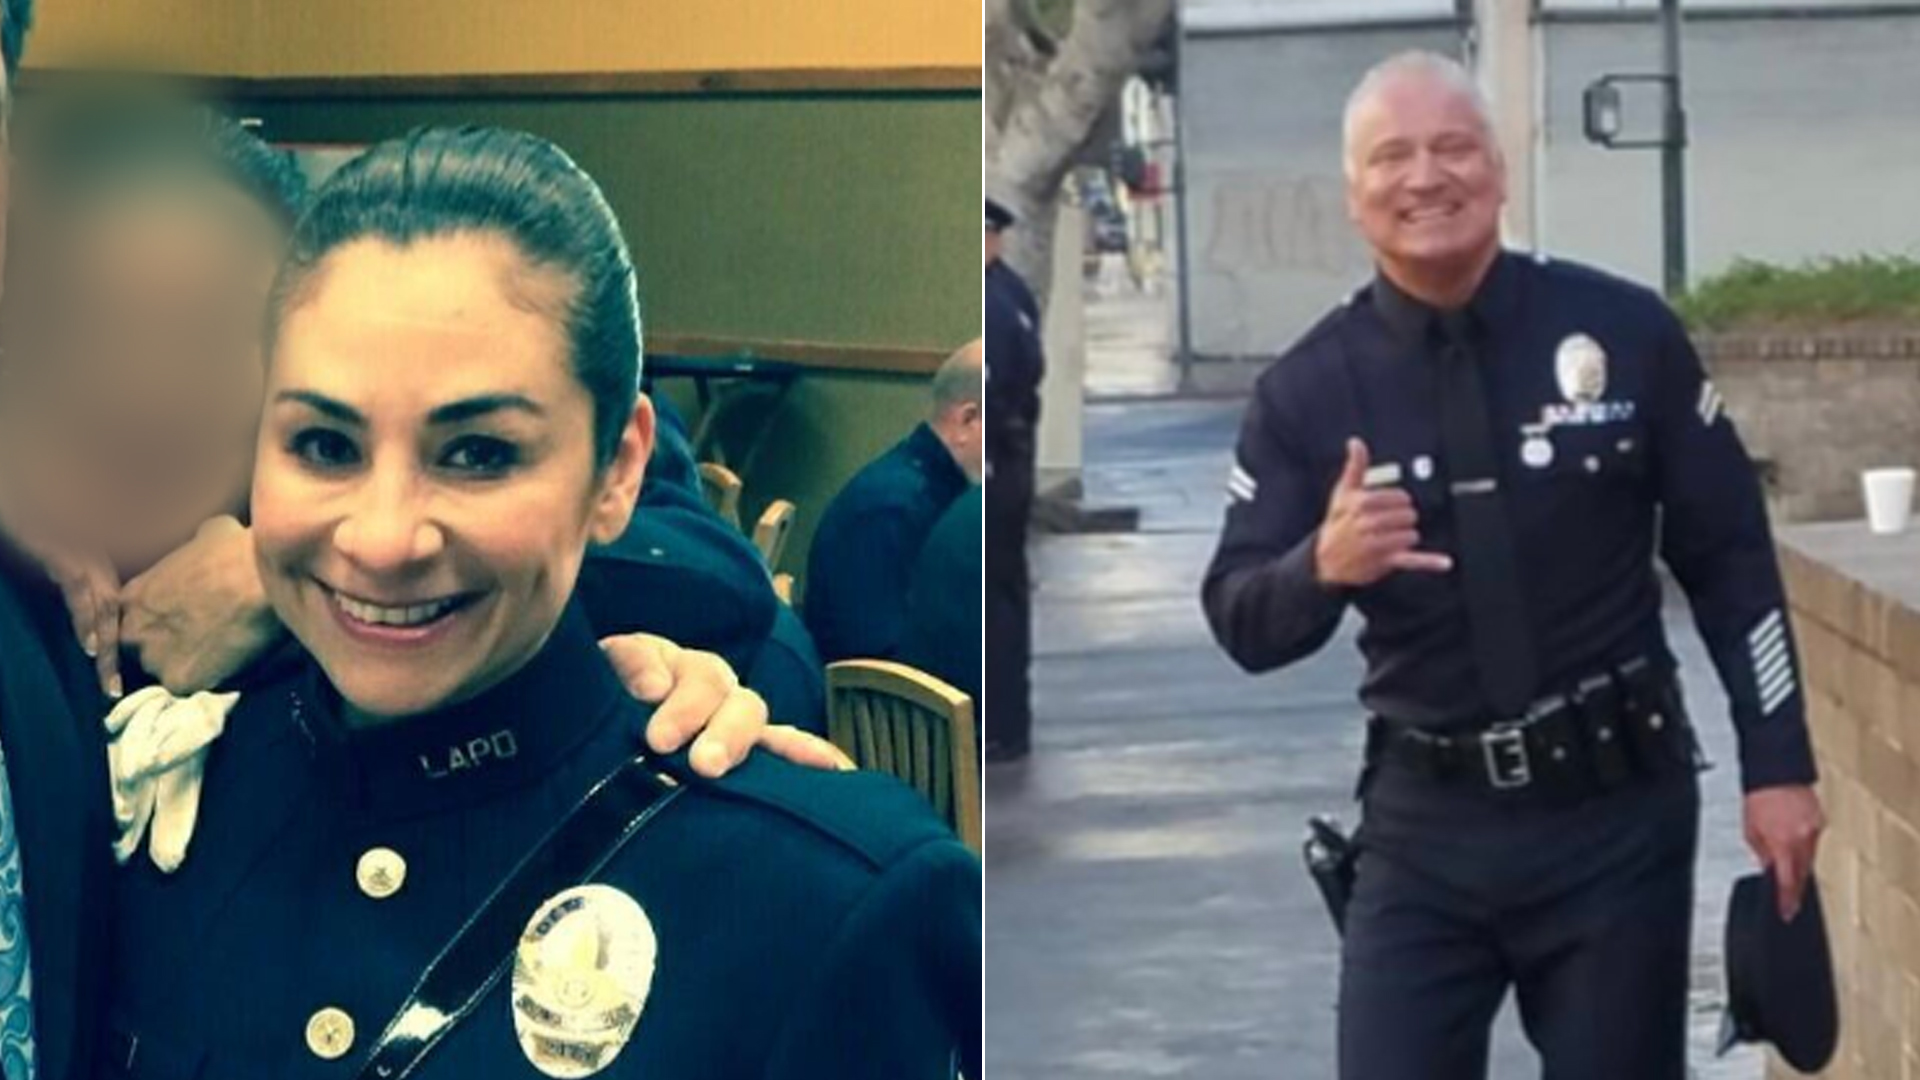 Los Angeles Police Department Robbery-Homicide Division Detective Ysabel Villegas, left, and Central Division Senior Lead Officer Danny Reedy, right, are seen in undated photos. (Credit: @LAPDCentral on Twitter/@LAPDOCB on Twitter)